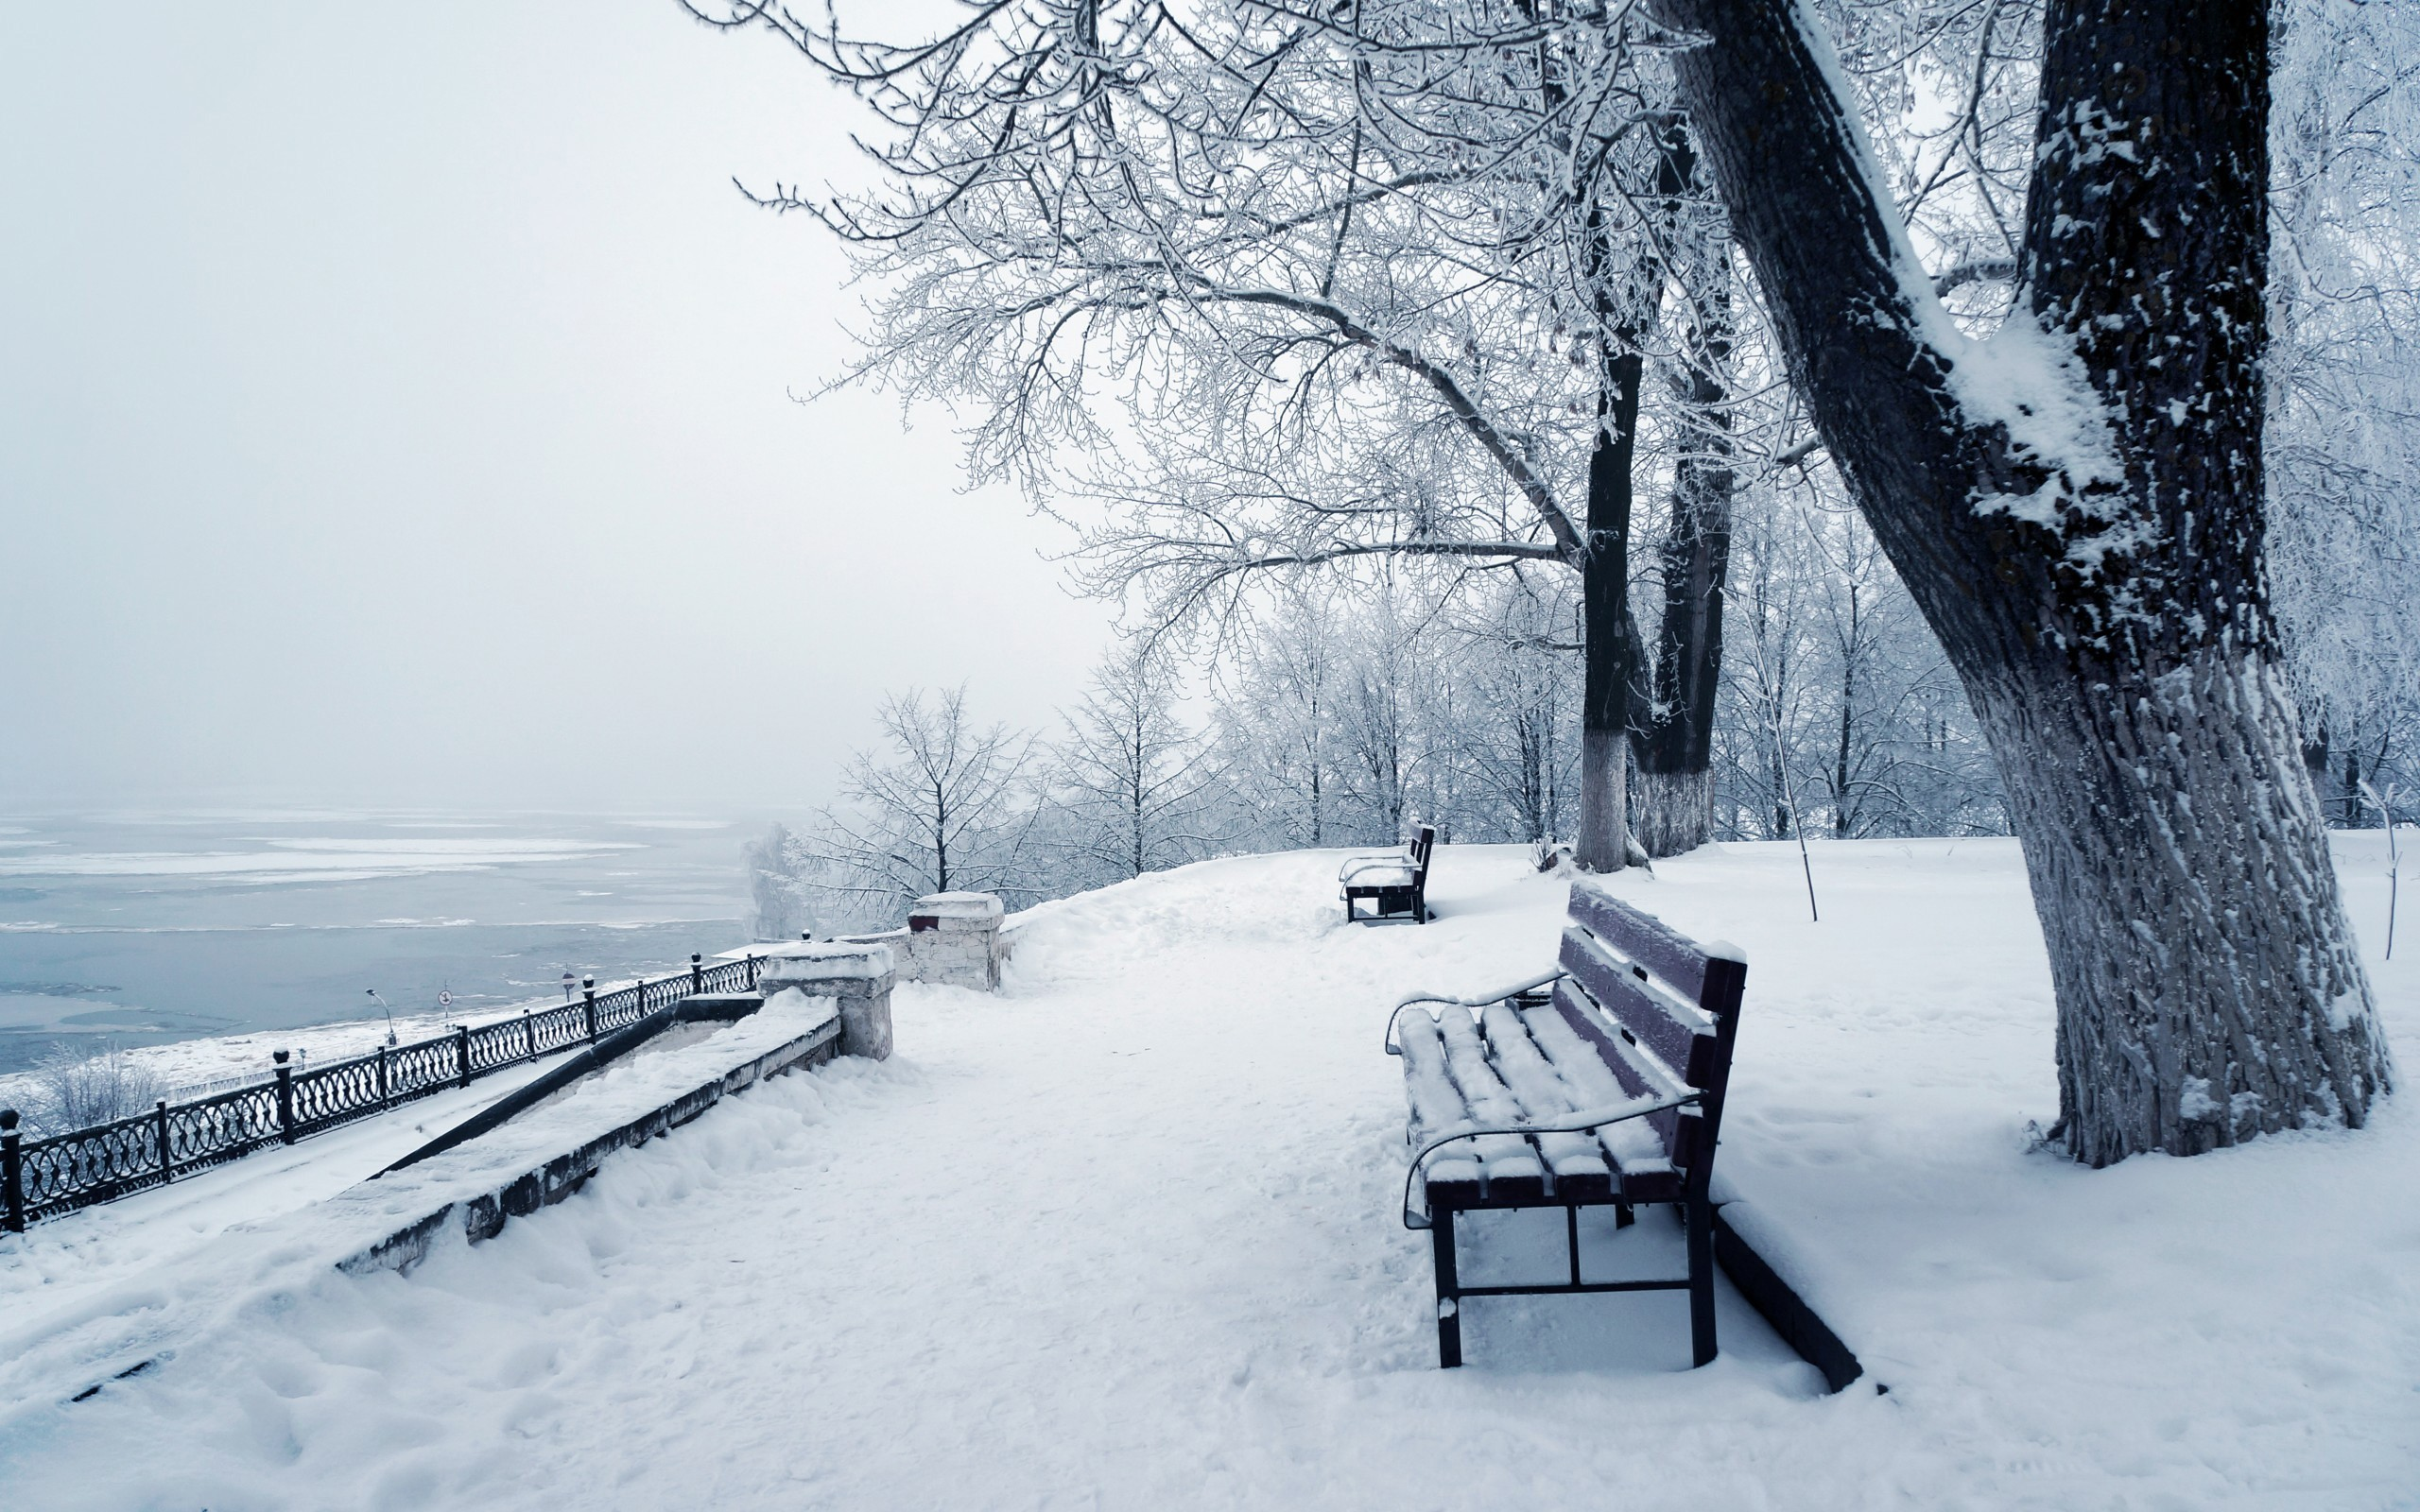 2560x1600 Winter-Iphone-Wallpaper-Download-Free